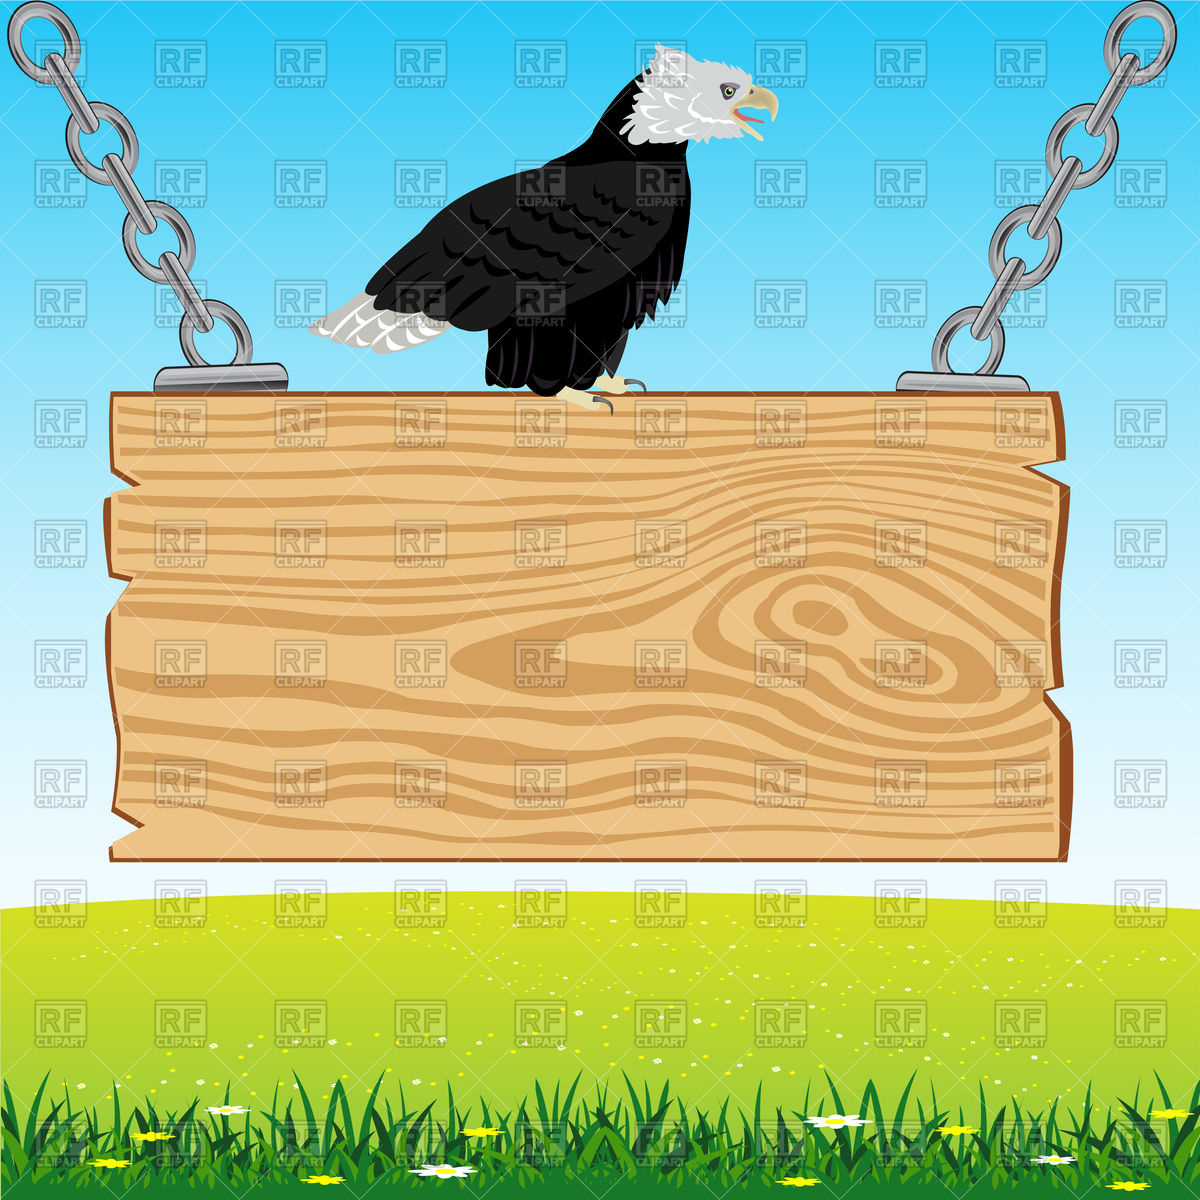 Advertising board with eagle on nature Vector Image #93937.